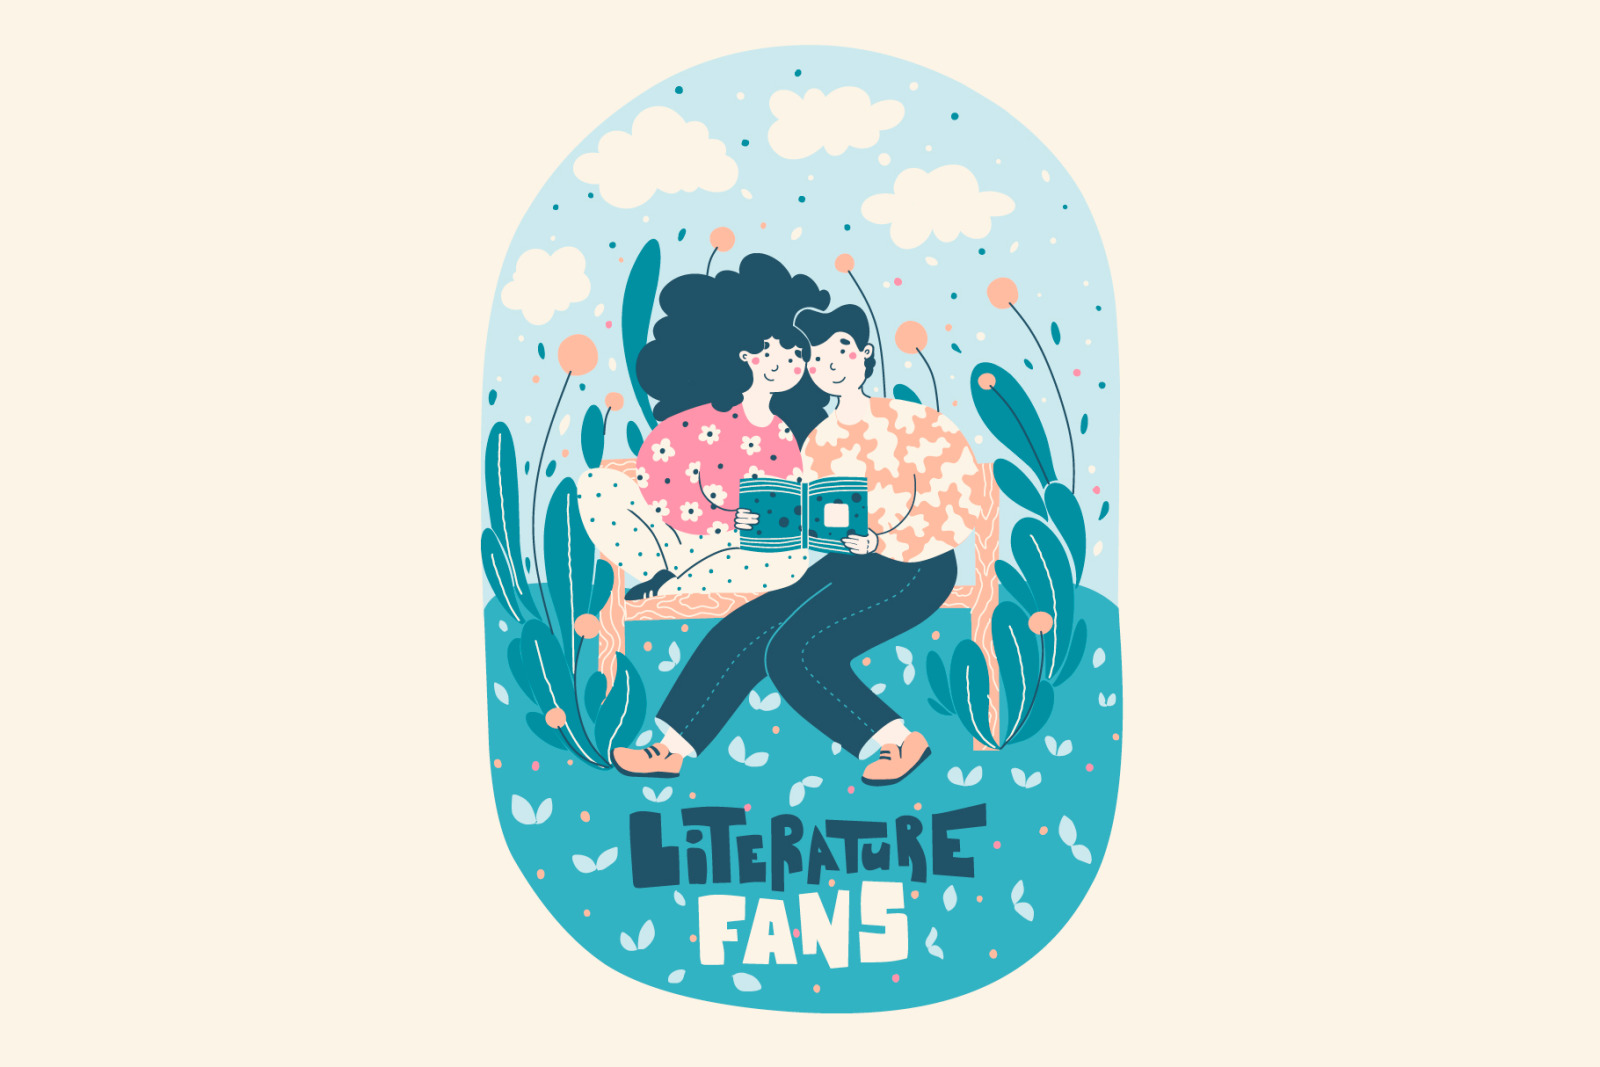 Literature Fans - cute illustration